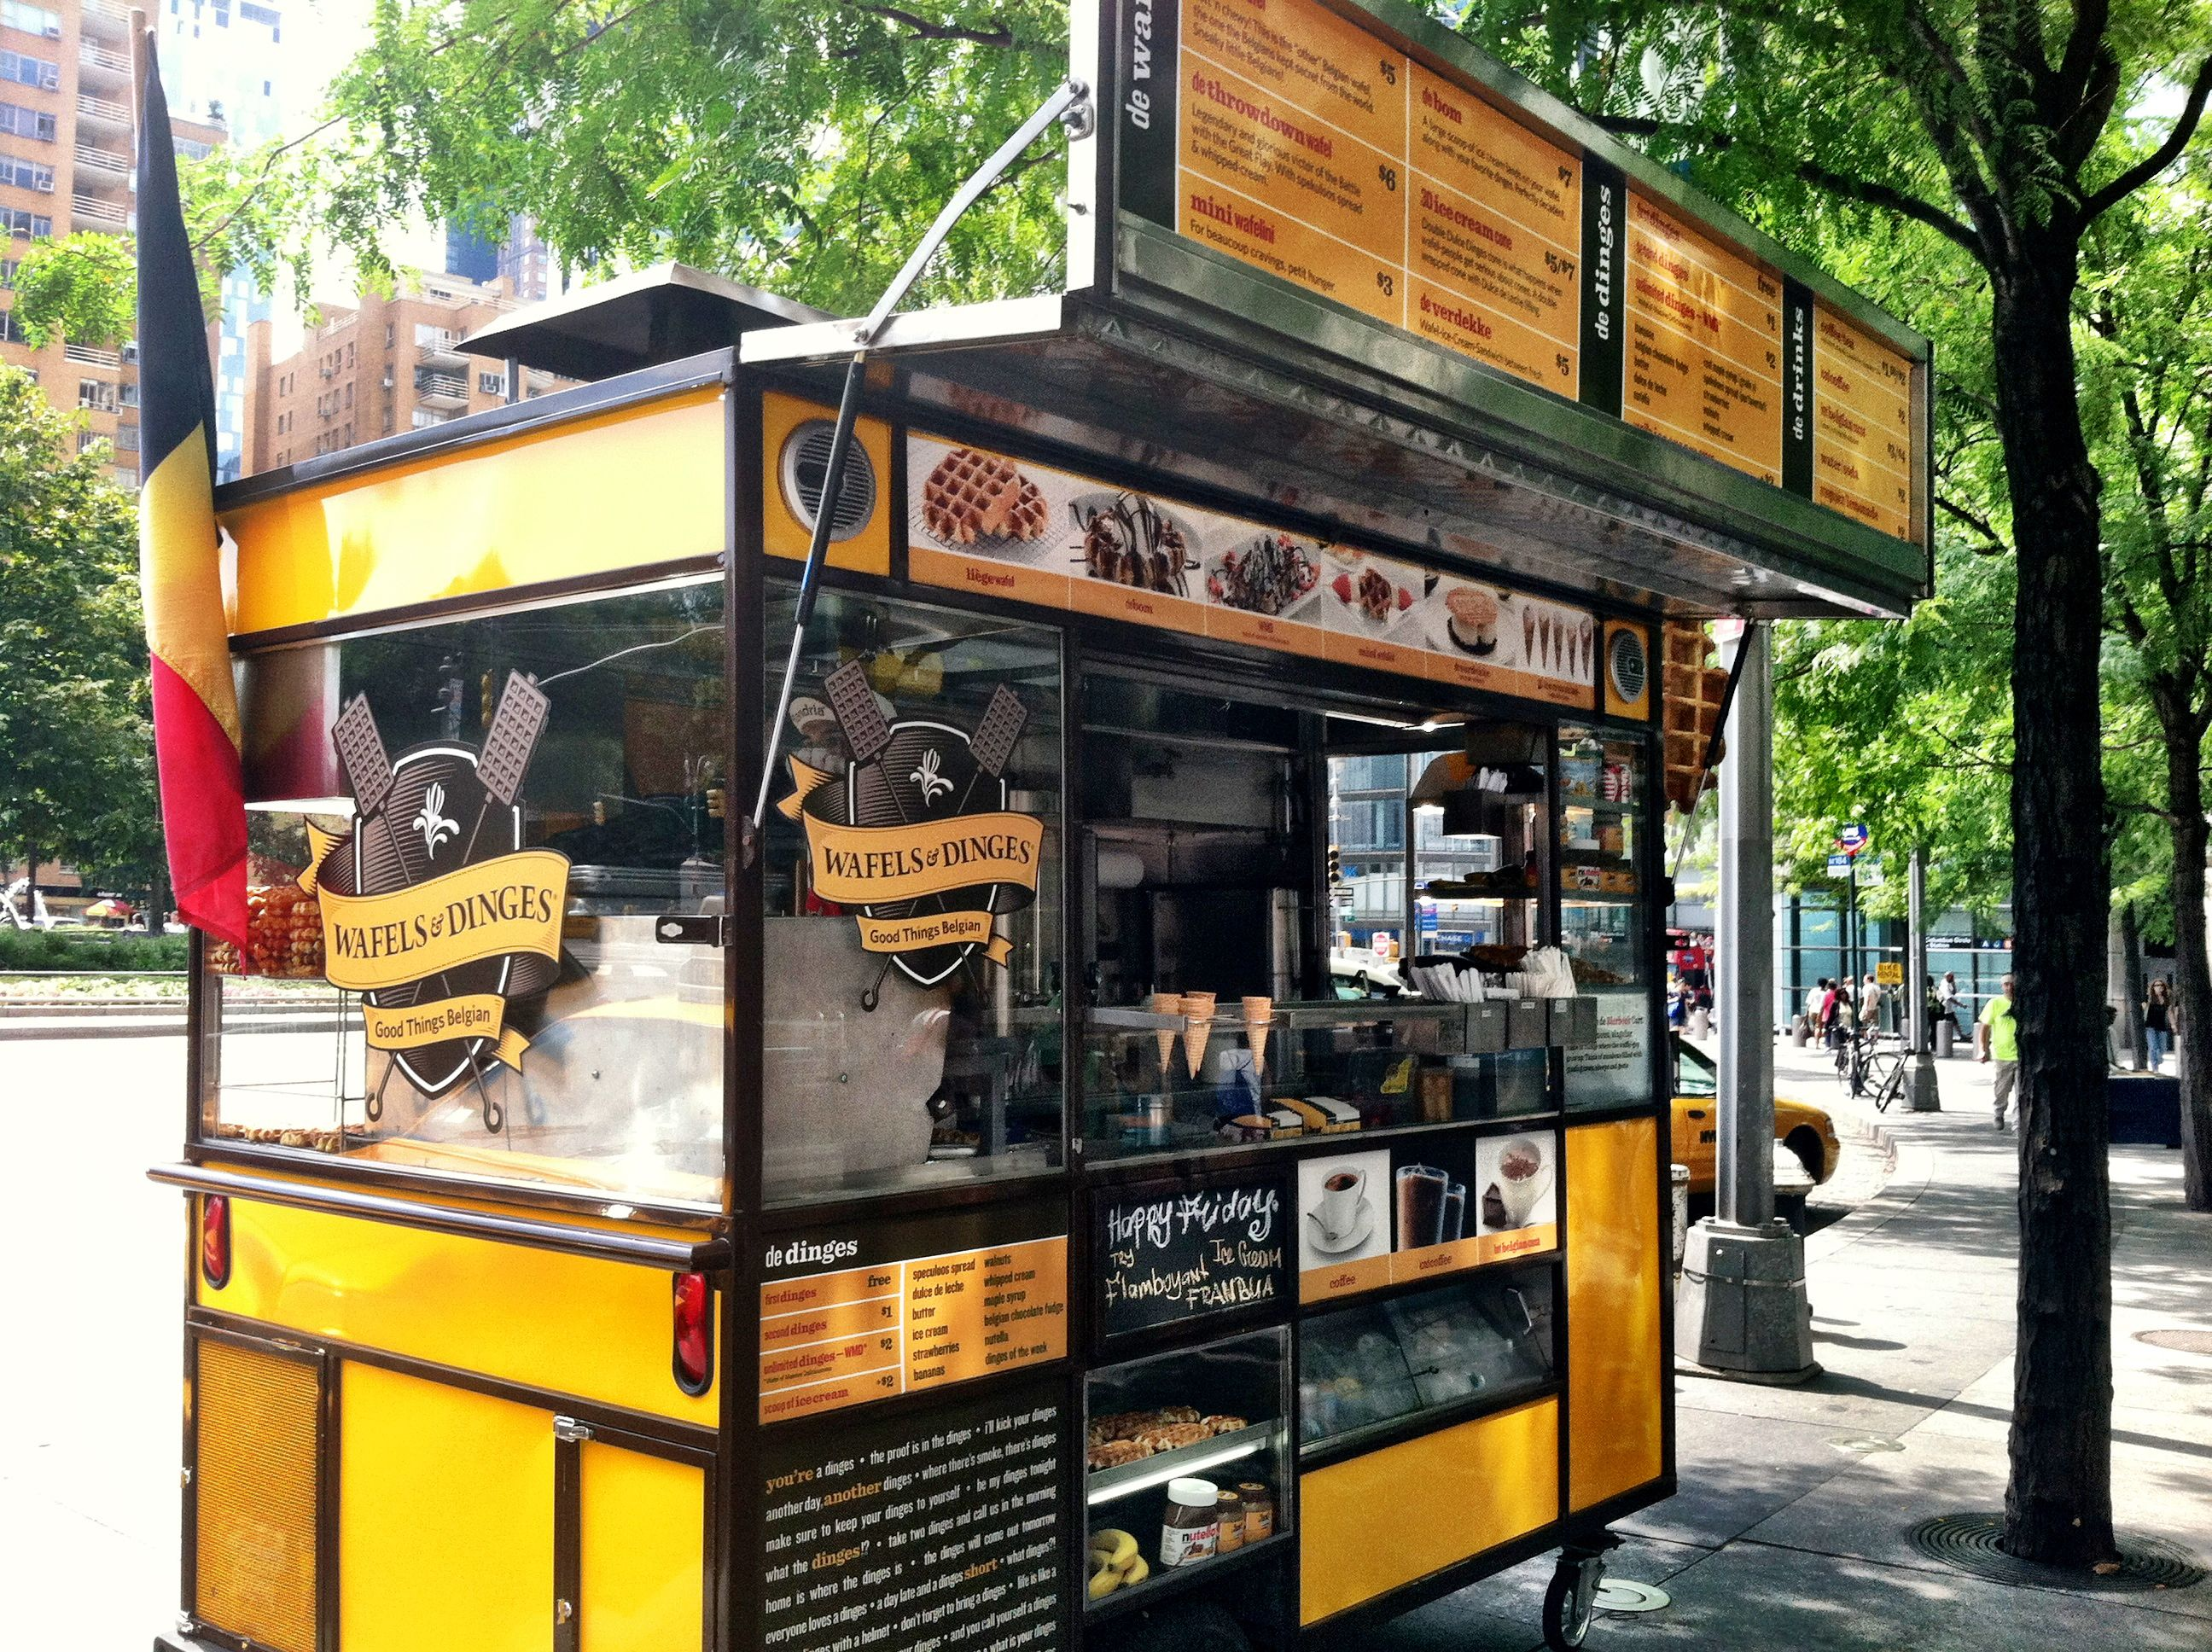 The wafels dinges waffle truck perched in columbus circle